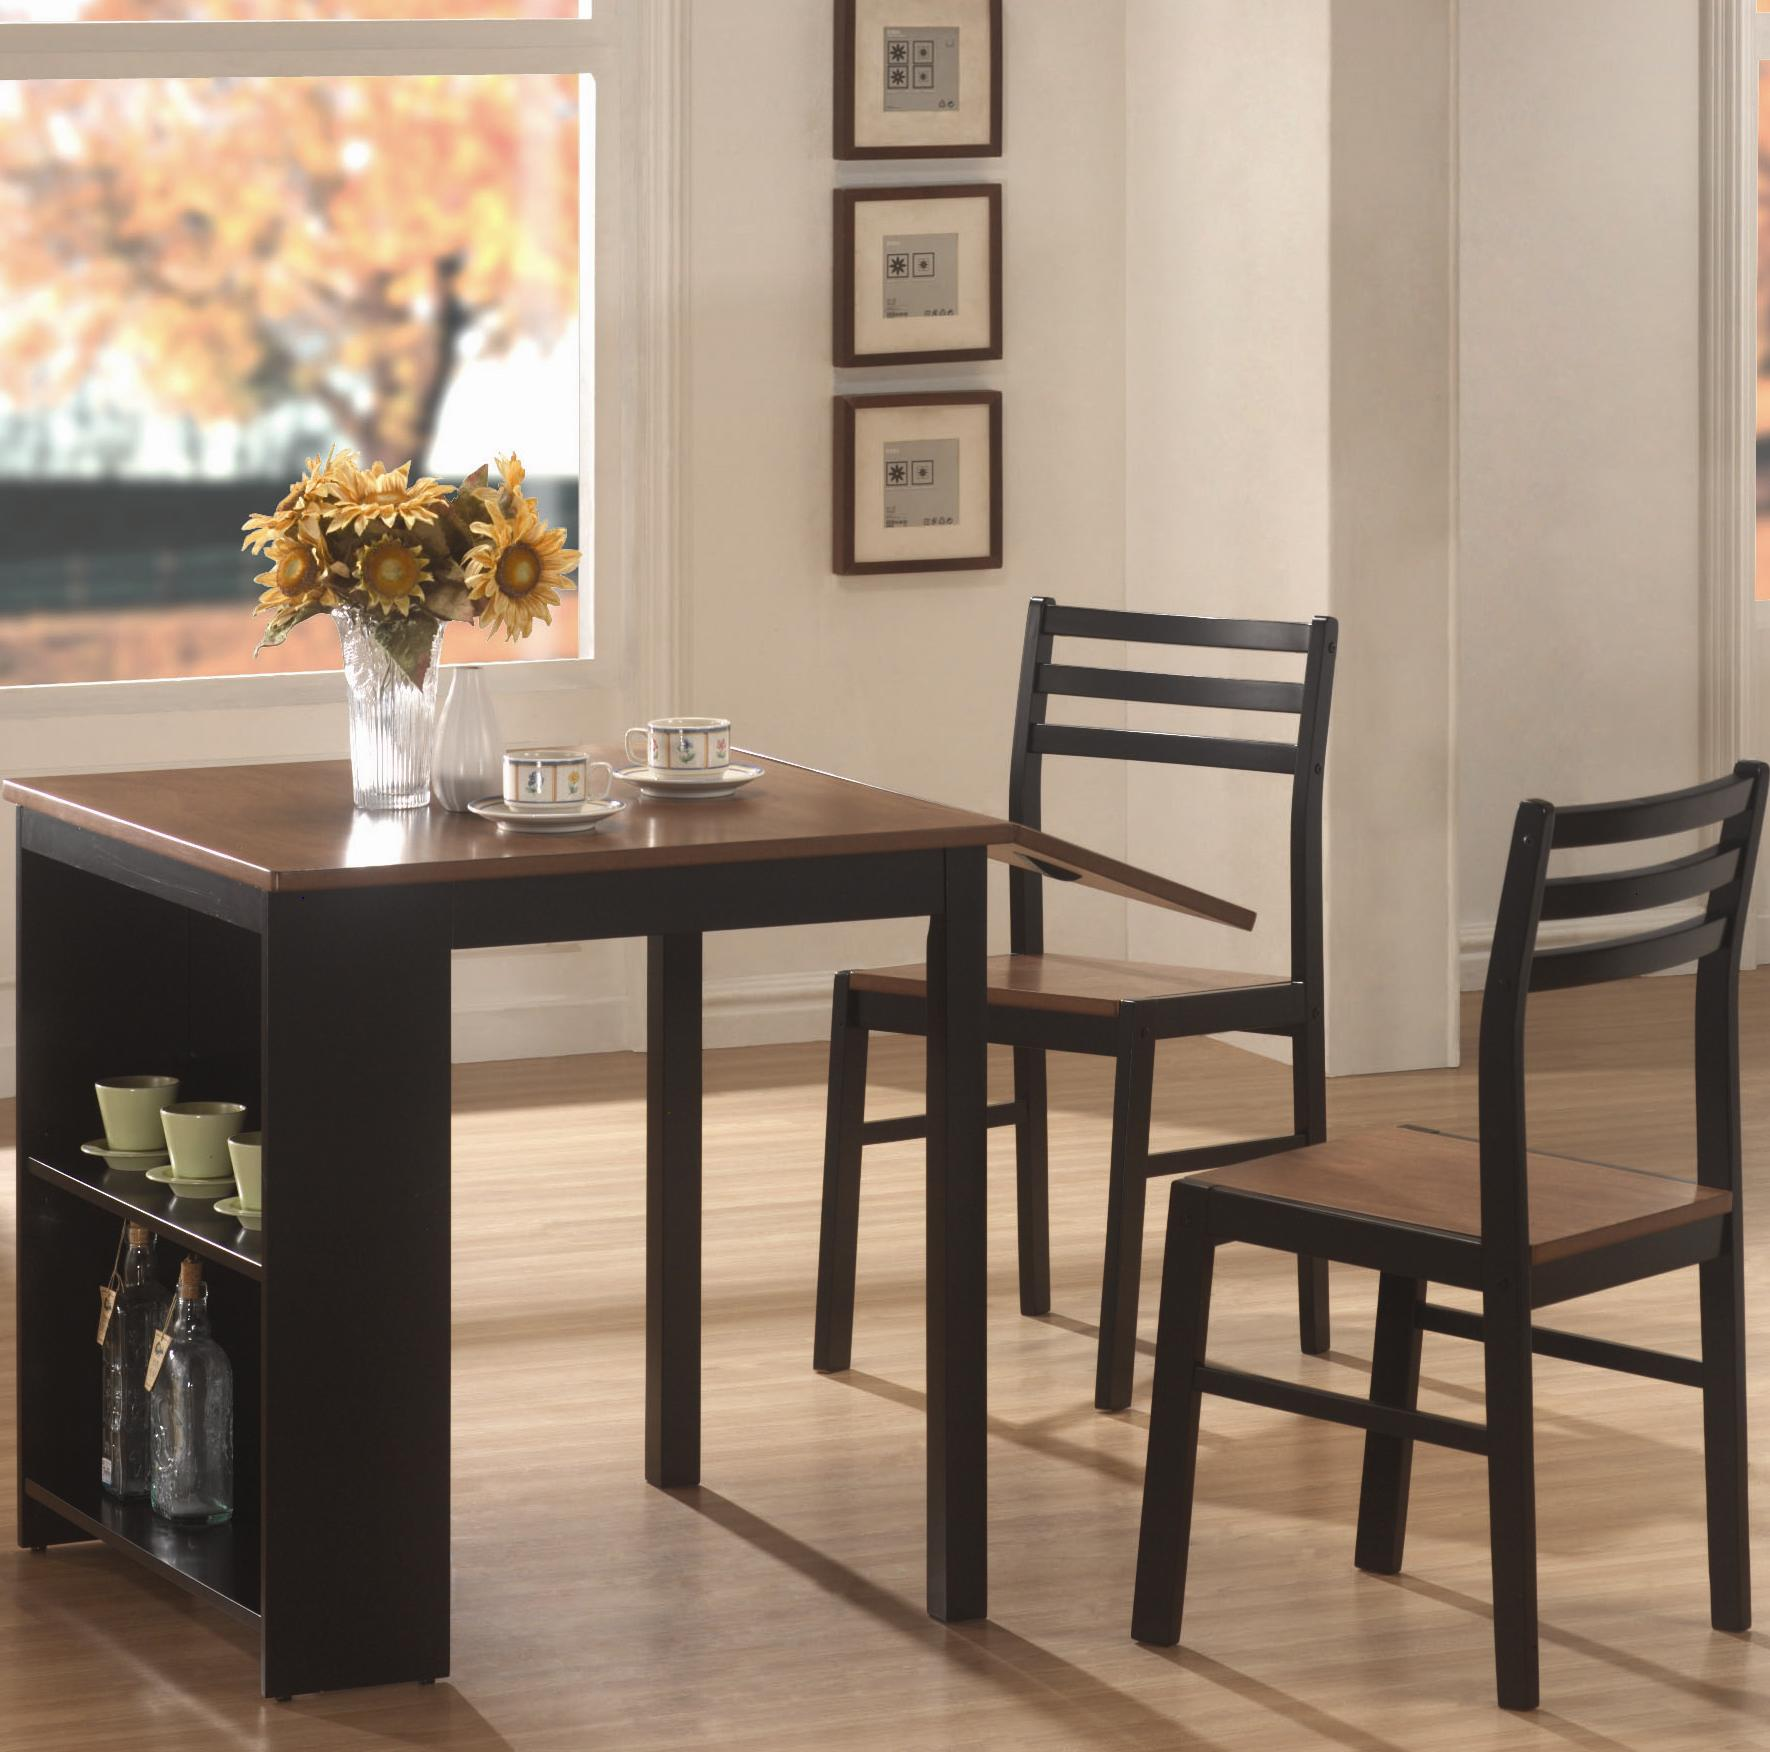 Apartments Table Kitchen Small Sets